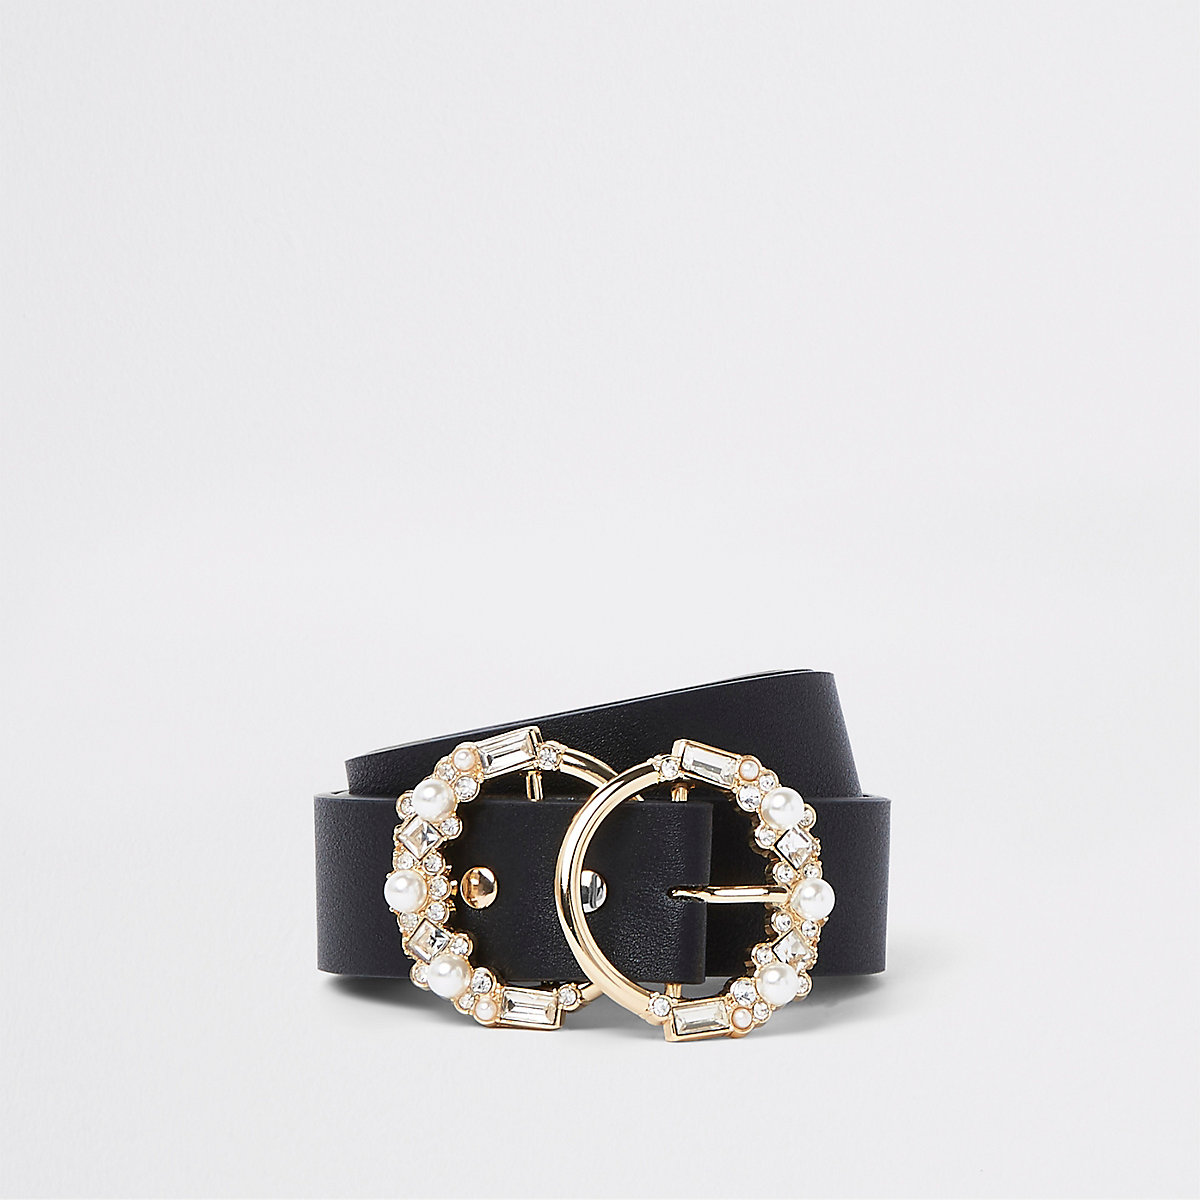 Black embellished double ring buckle belt